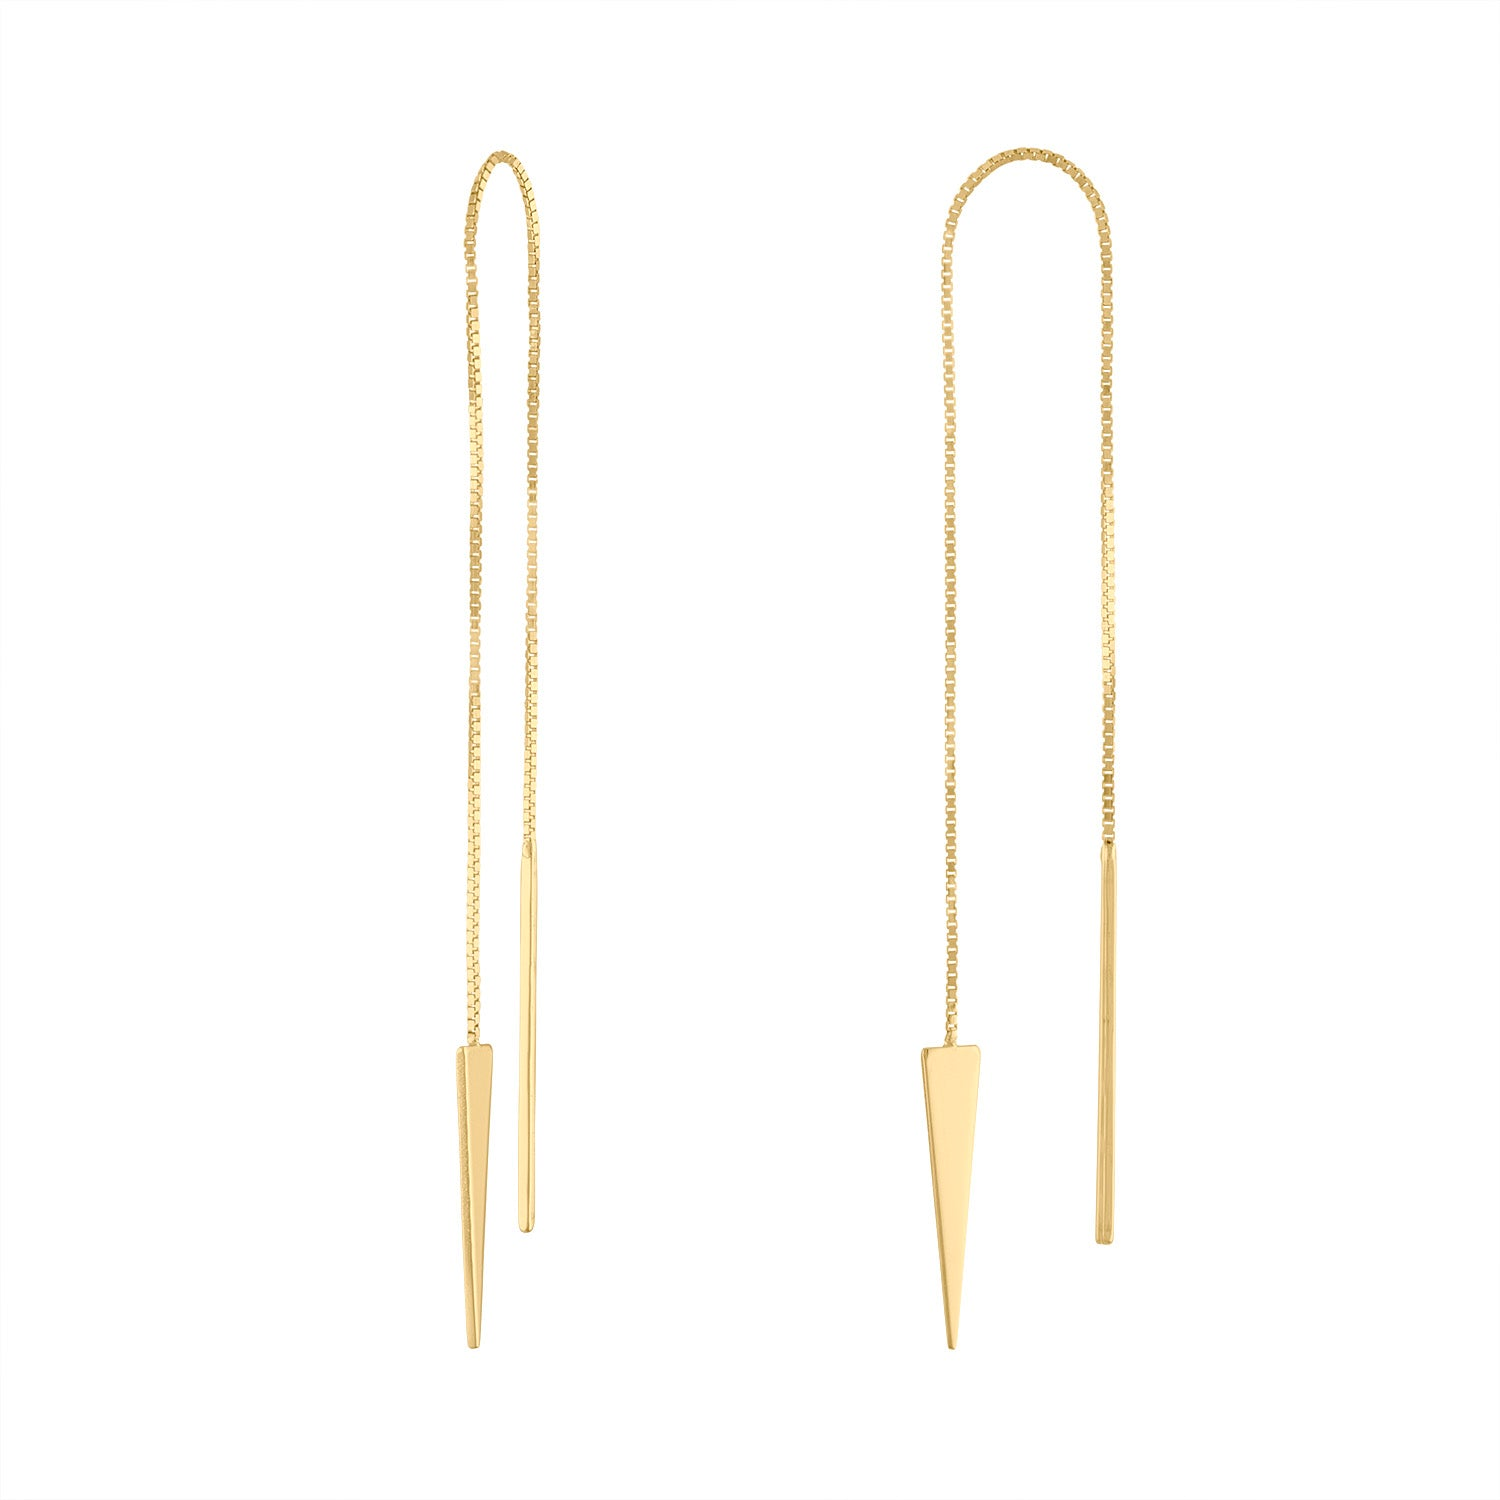 14KT GOLD ELONGATED TRIANGLE THREADER EARRING